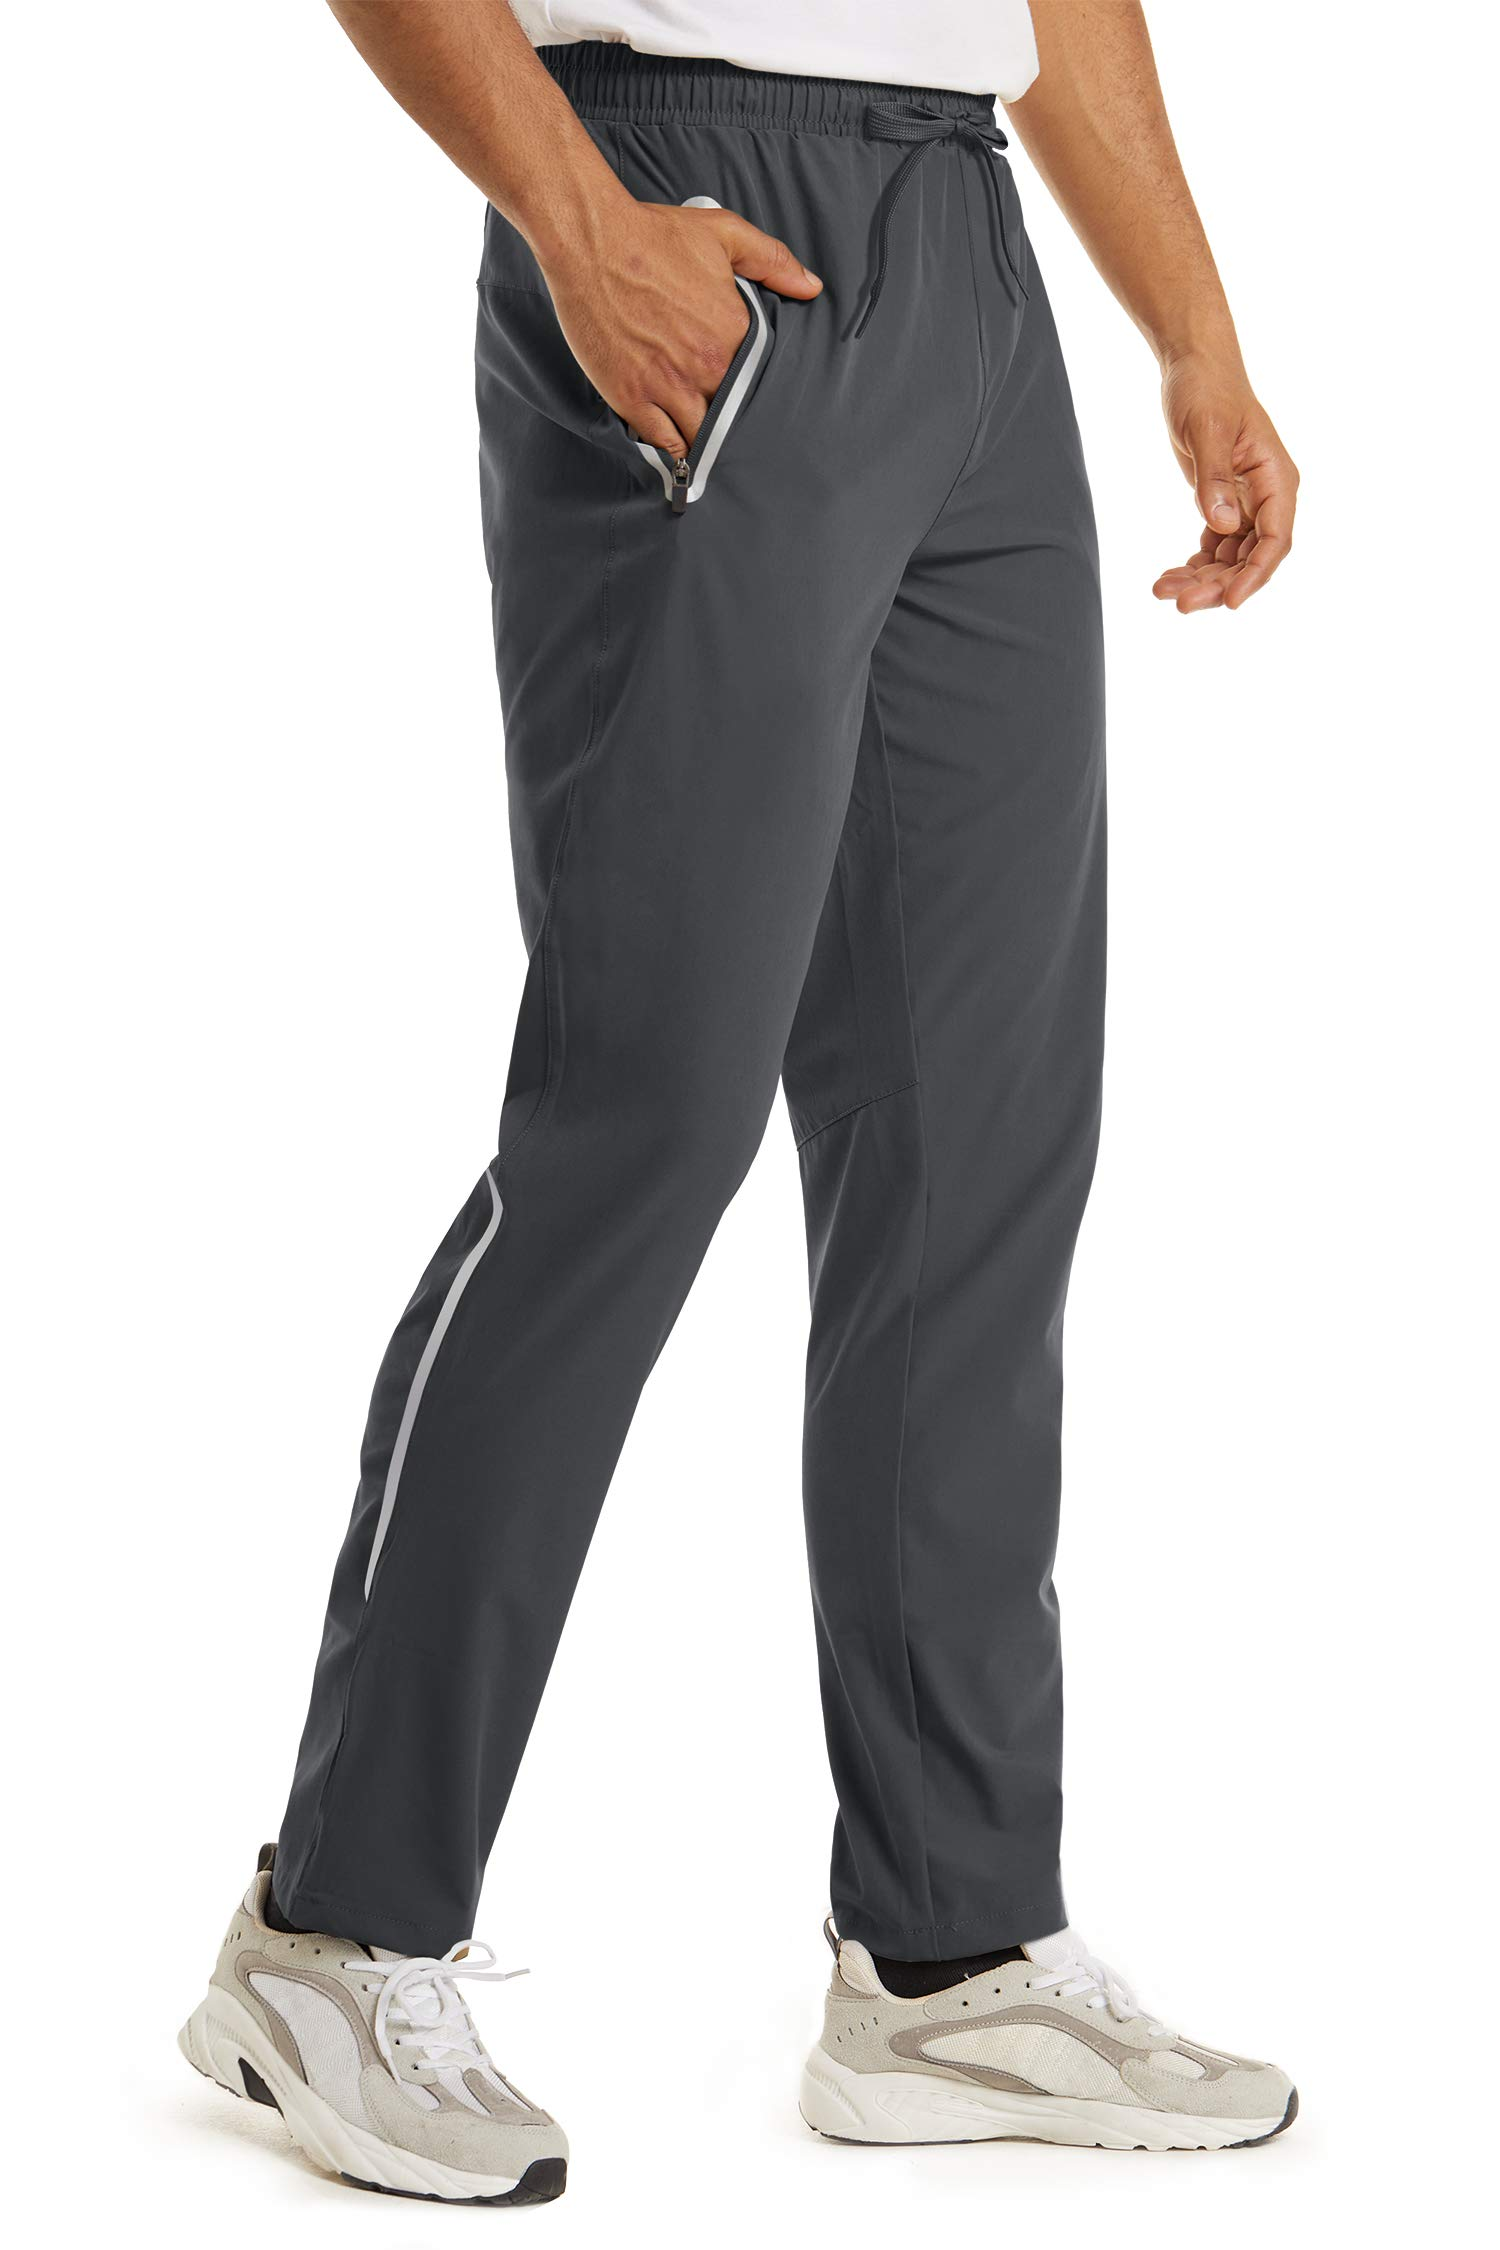 Boladeci Mens Quick Dry Breathable Lightweight Drawstring Athletic Stretch Jogger Pants